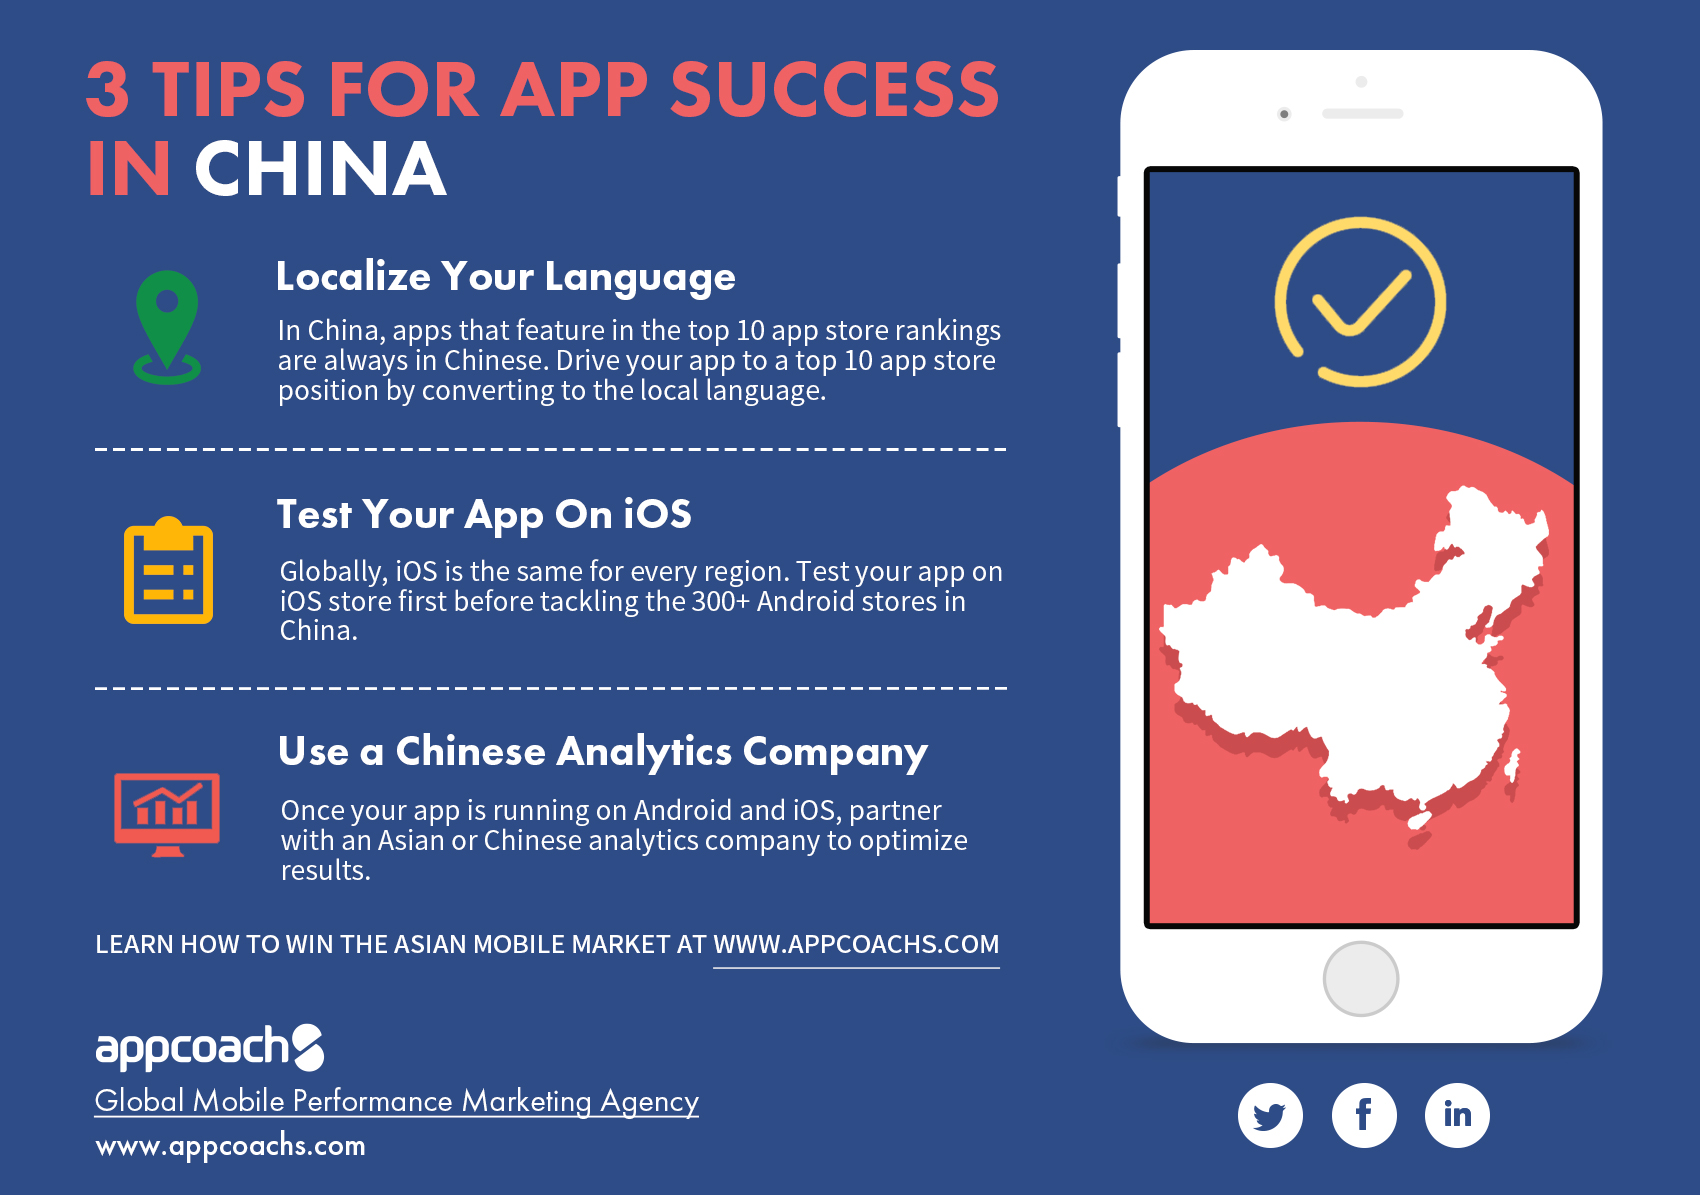 Appcoach 3 Tips for China Success.jpg